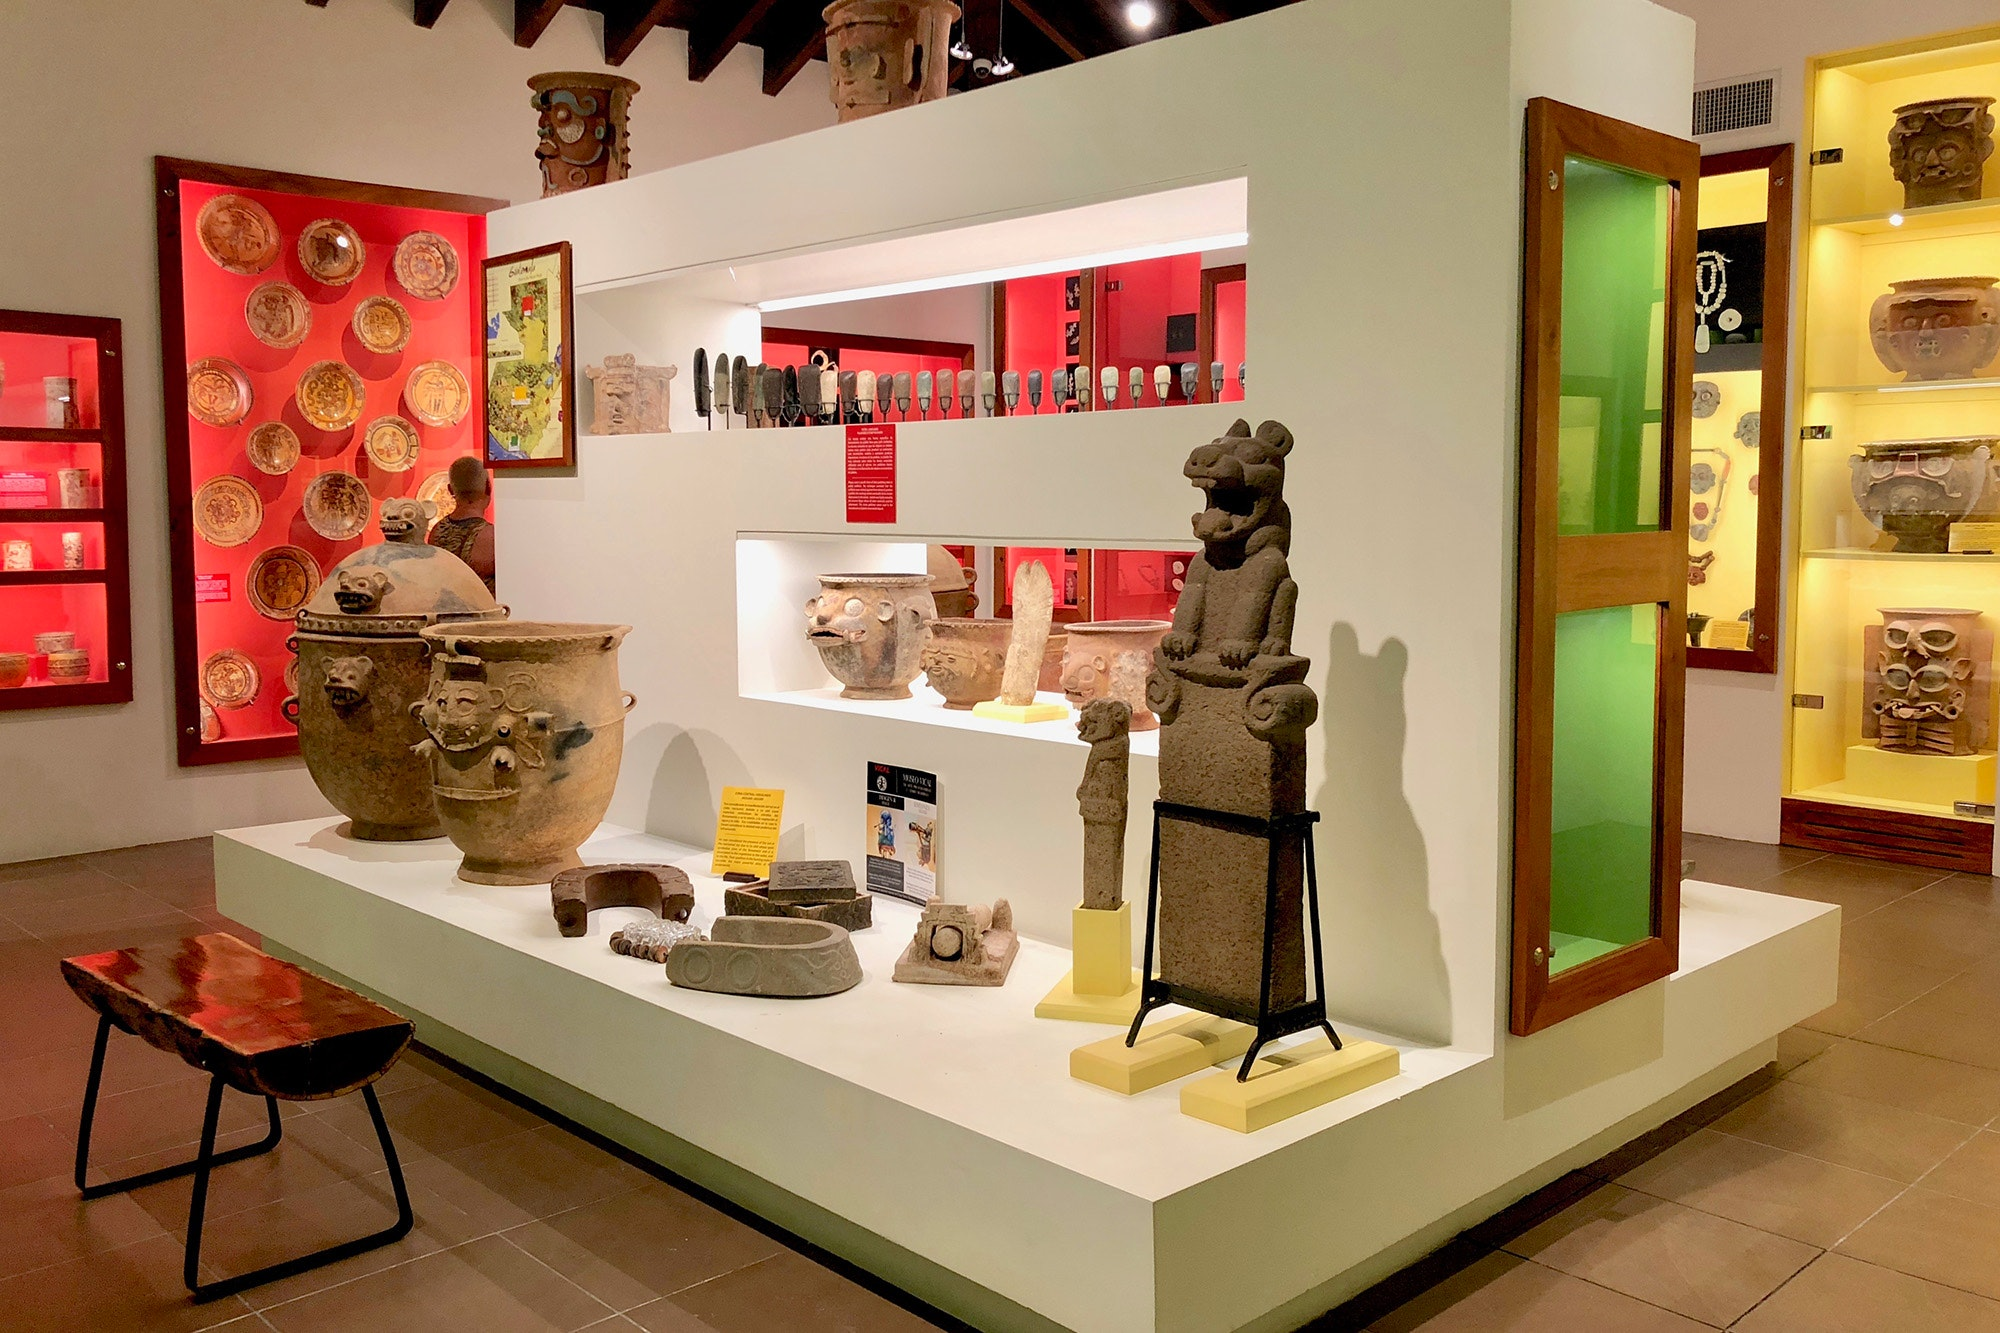 The museum at Las Lagunas Hotel exhibits the owner's private collection of registered Mayan artifacts.